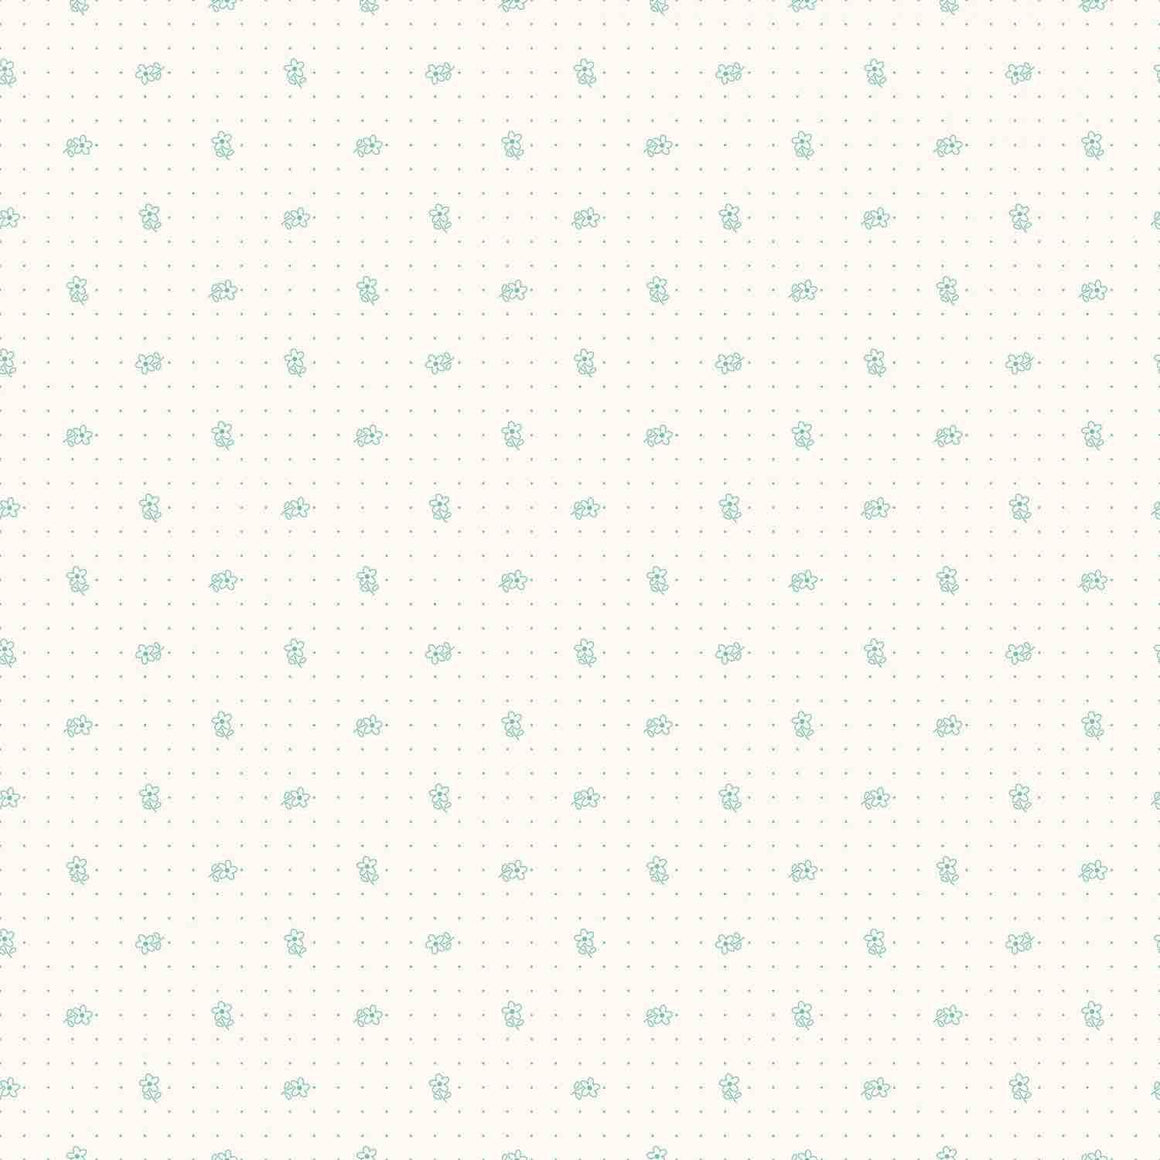 Bee Backgrounds: Daisy Teal